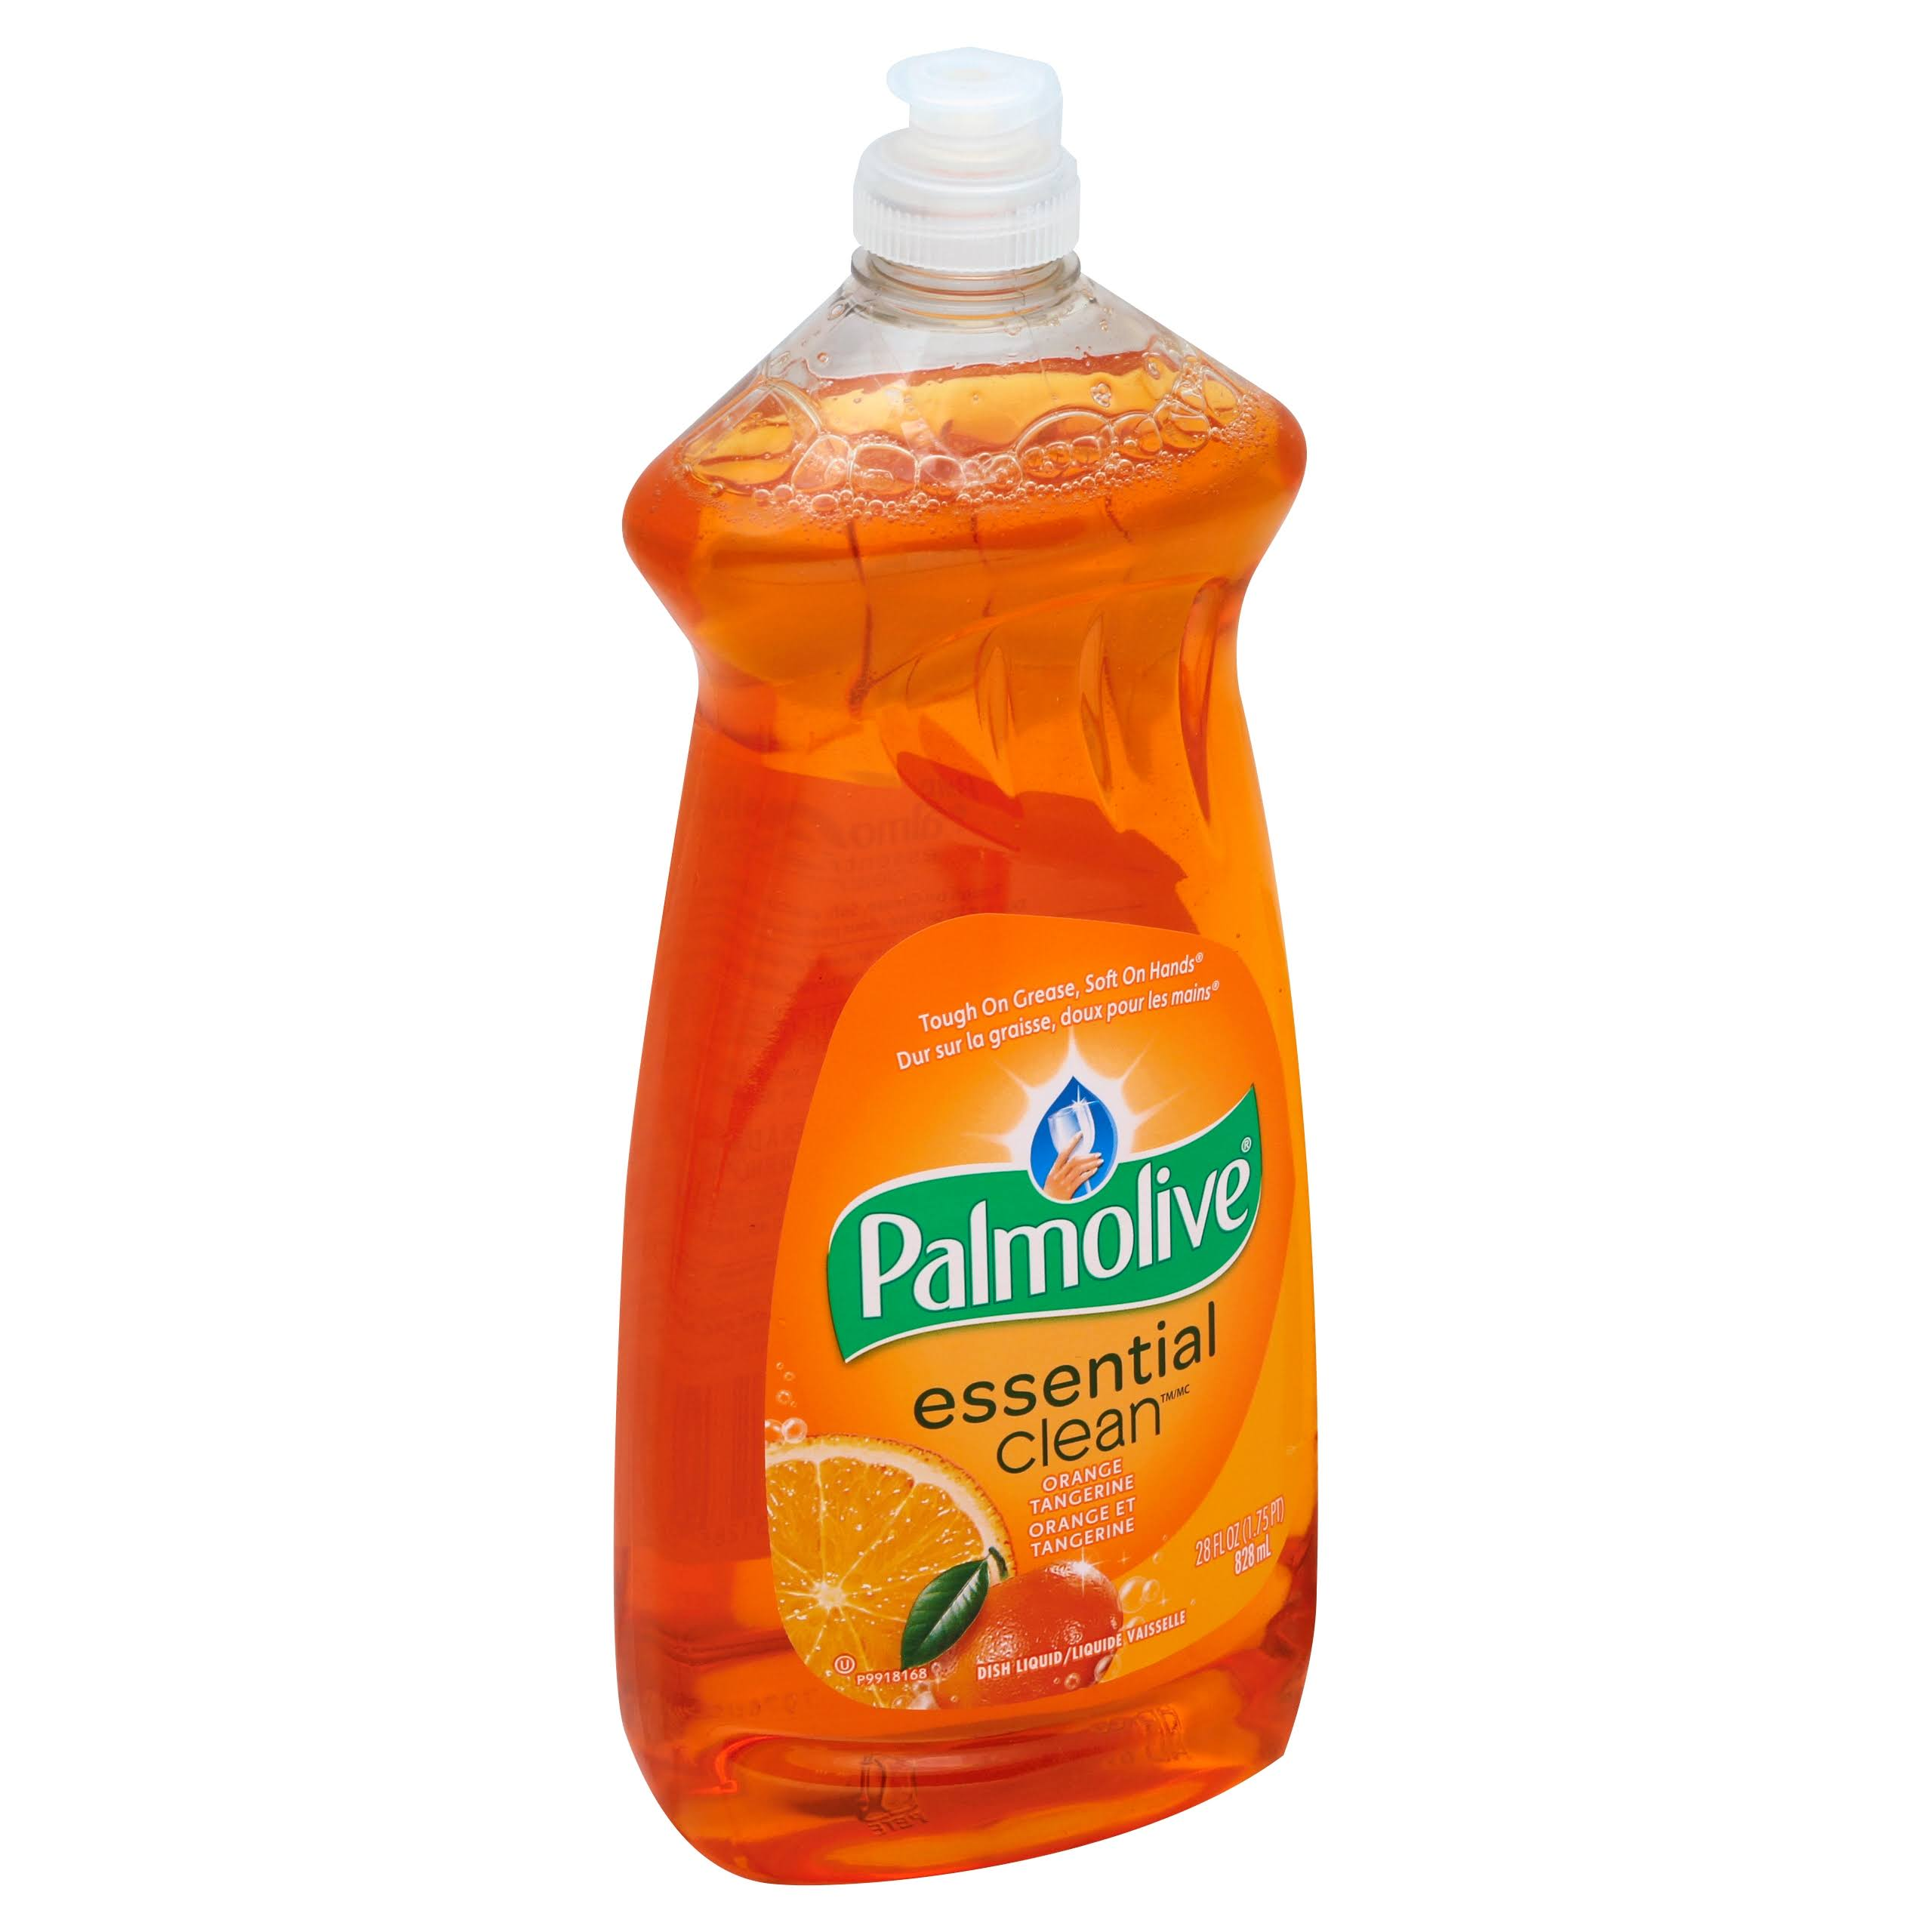 Palmolive Dishwash Liquid - Orange, 828ml